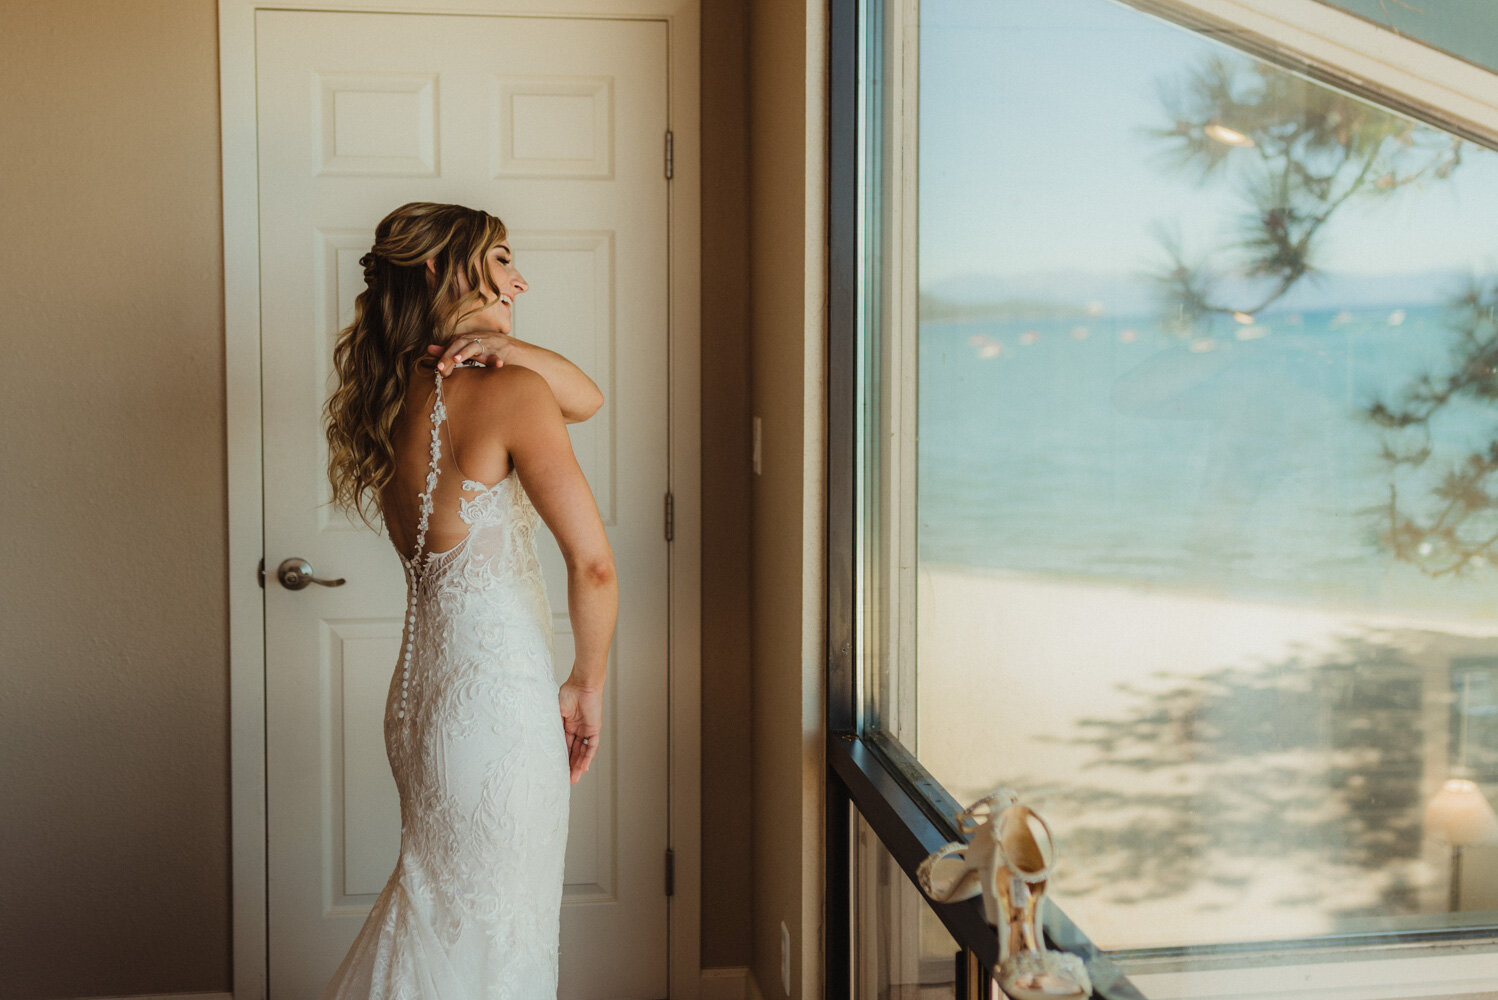 Edgewood Tahoe Wedding, photo of bride putting on her wedding dress